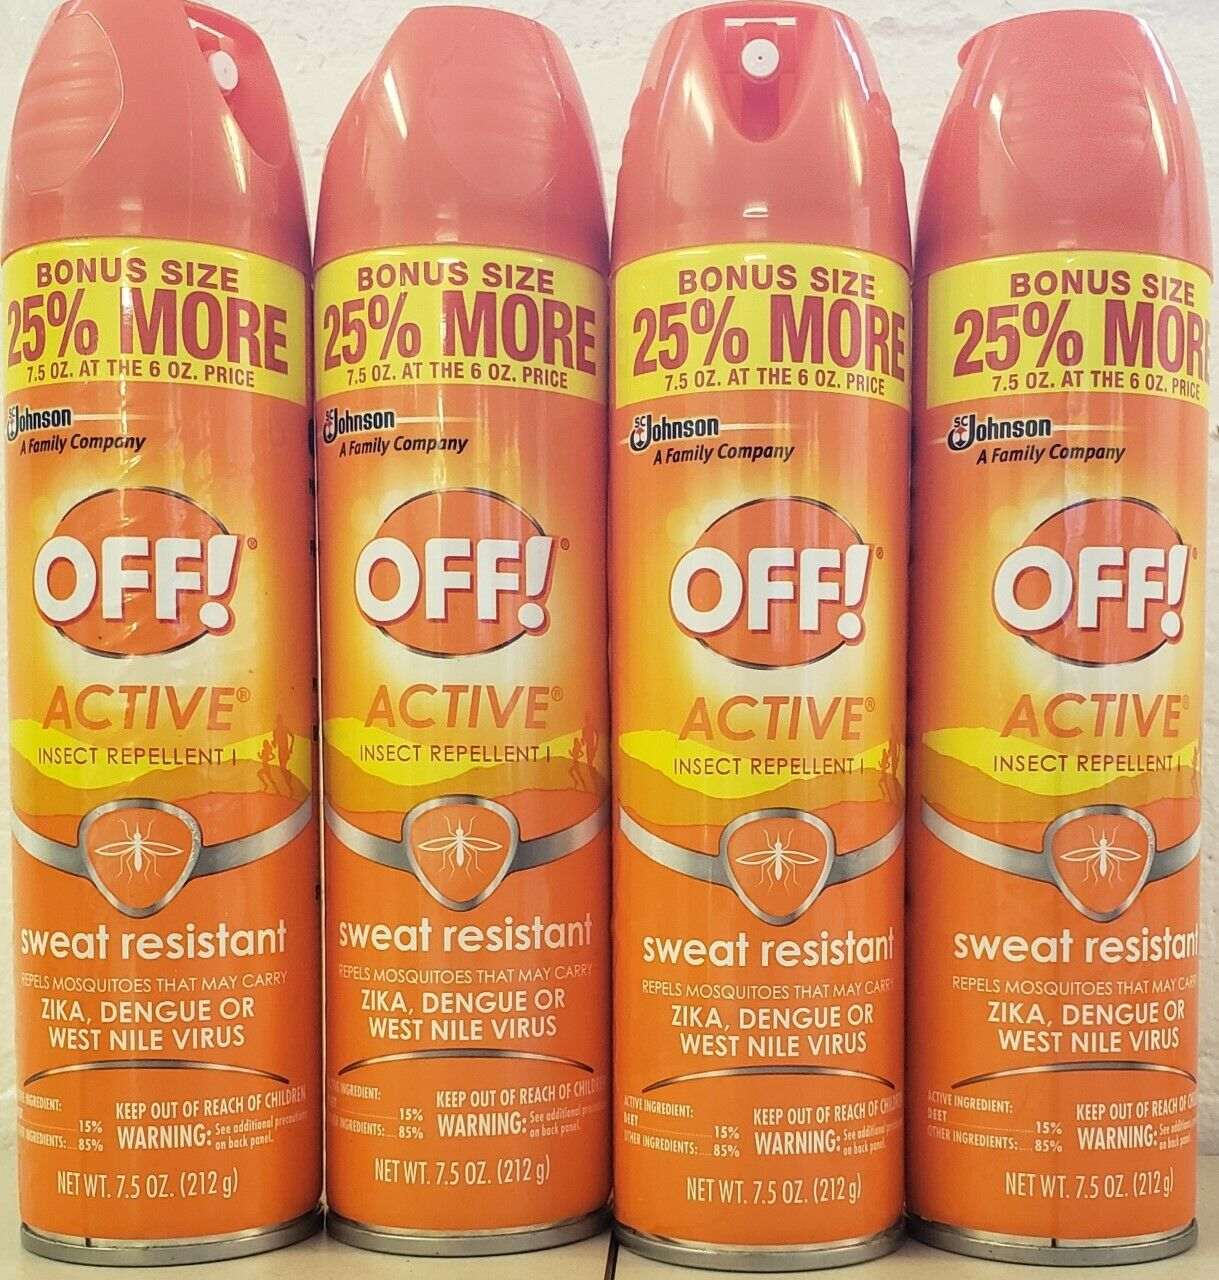 OFF! Active Insect Repellent, Sweat Resistant 6 oz